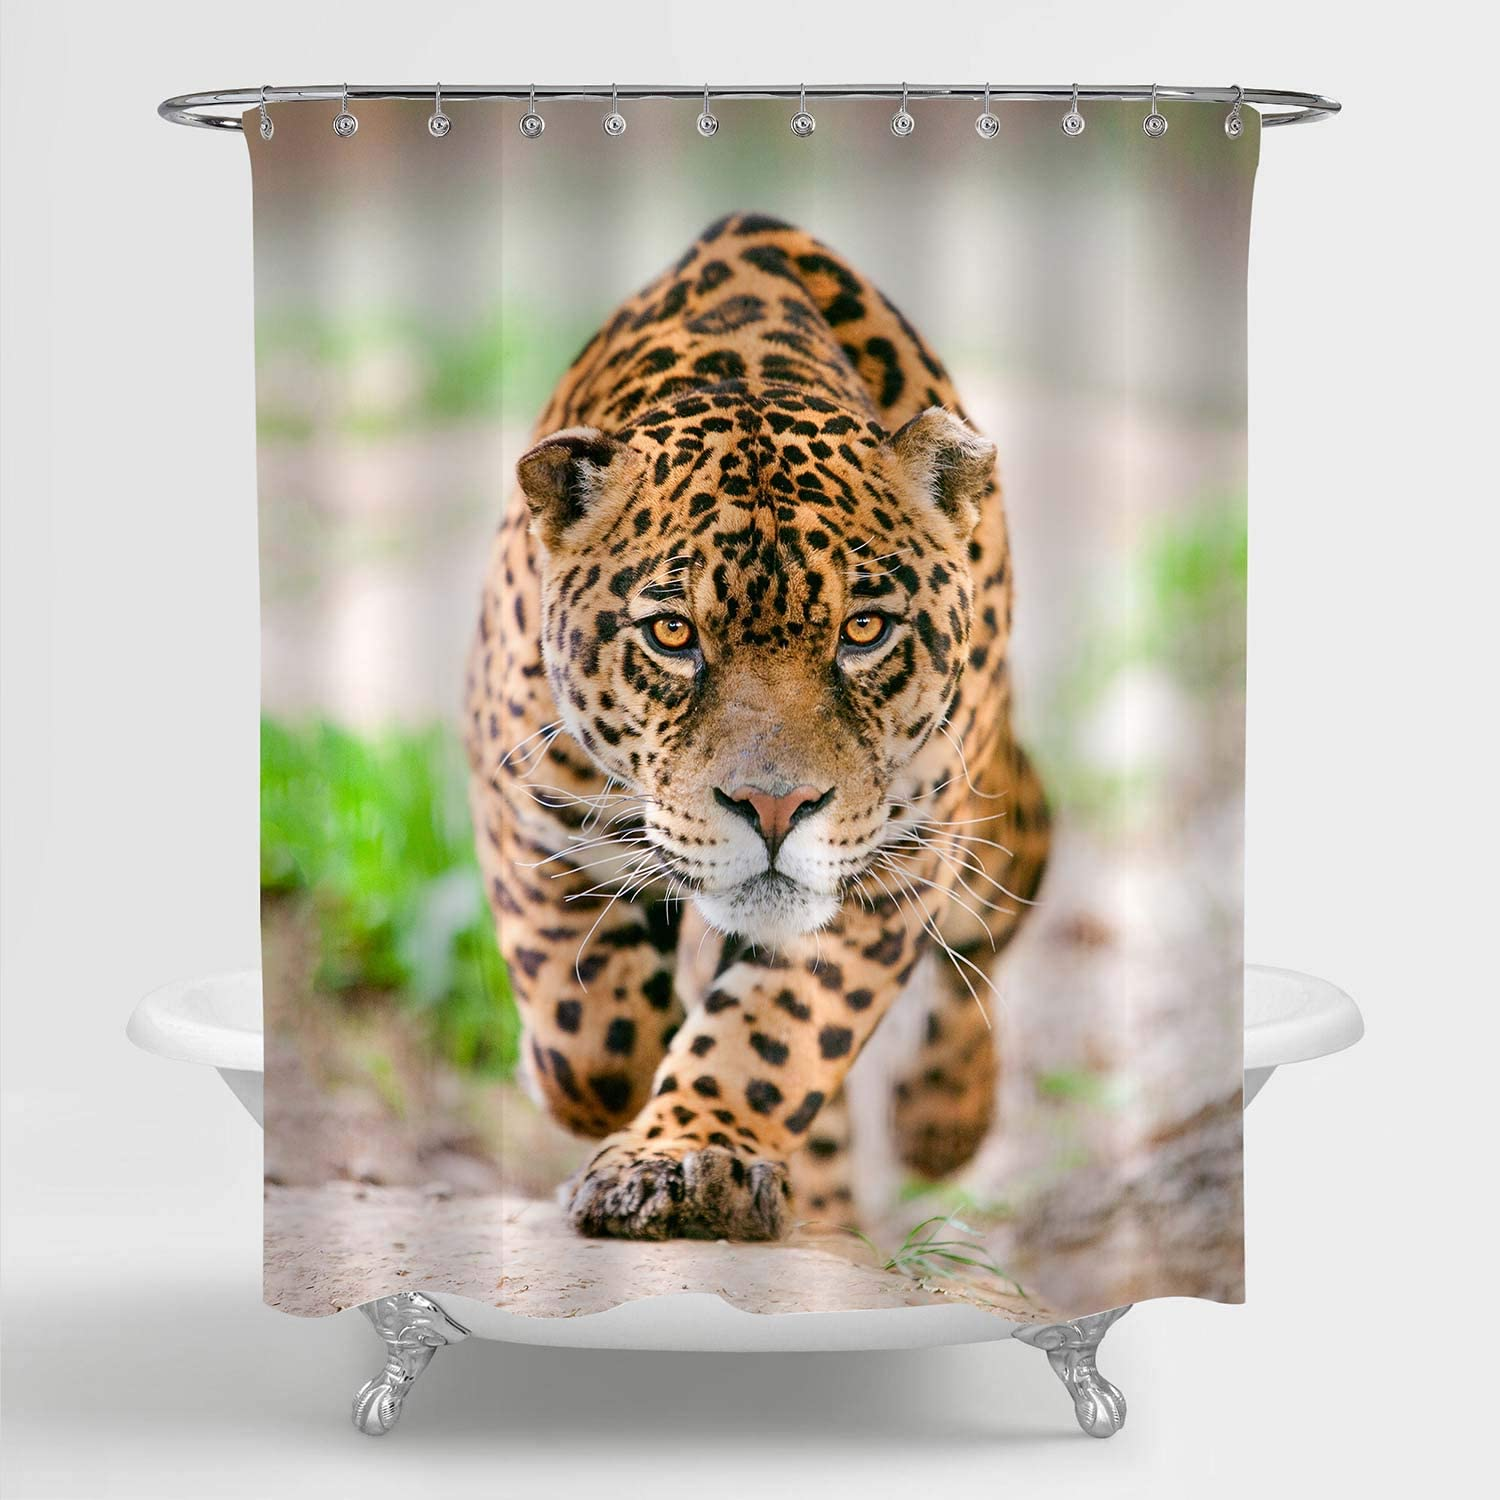 MitoVilla Leopard Shower Curtain for Bathroom Decor, Deadly Wild Male Cheetah Performing an Attack Art Print Bathroom Accessories for Nature Wildlife Theme Home, Gold, 72